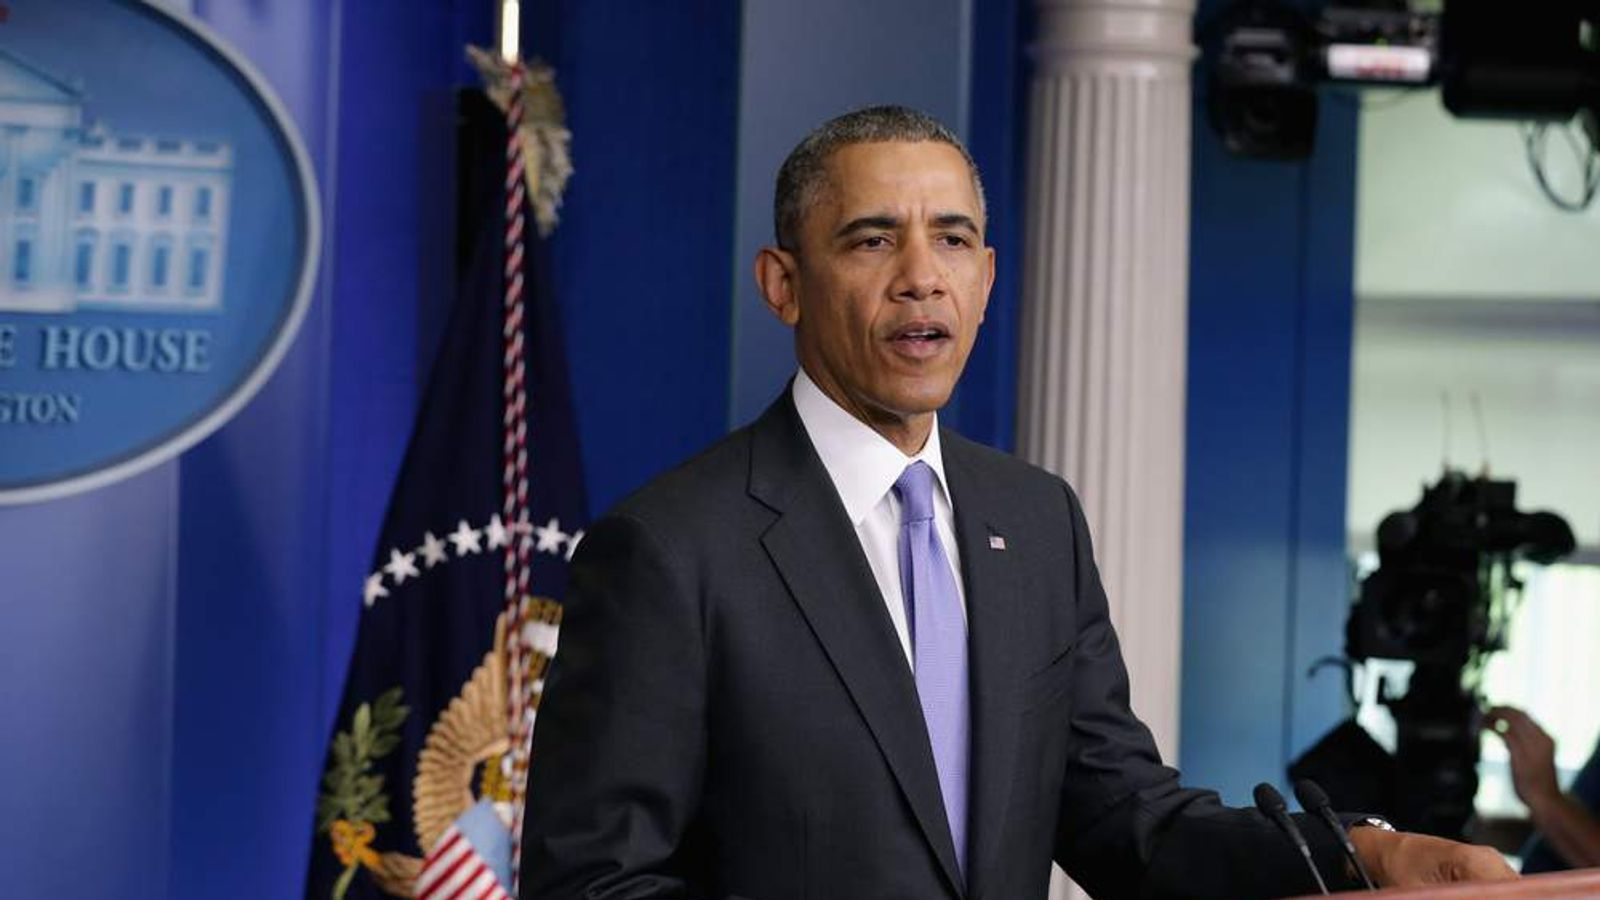 President Obama Delivers Statement On Veterans Affairs Scandal